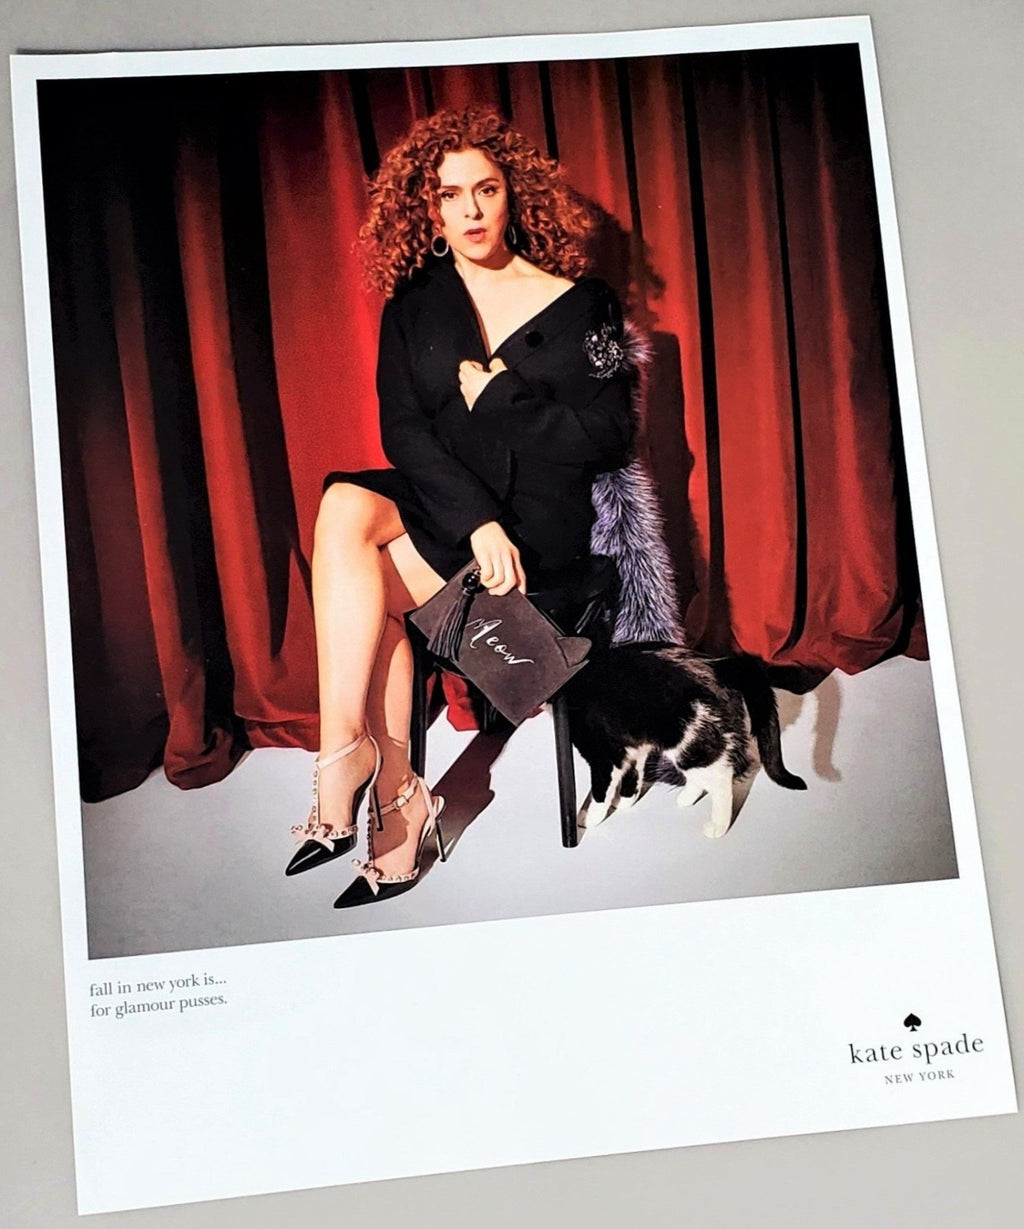 Bernadette Peters for Kate Spade photograph advertisement page featured in September 2016 Vogue magazine